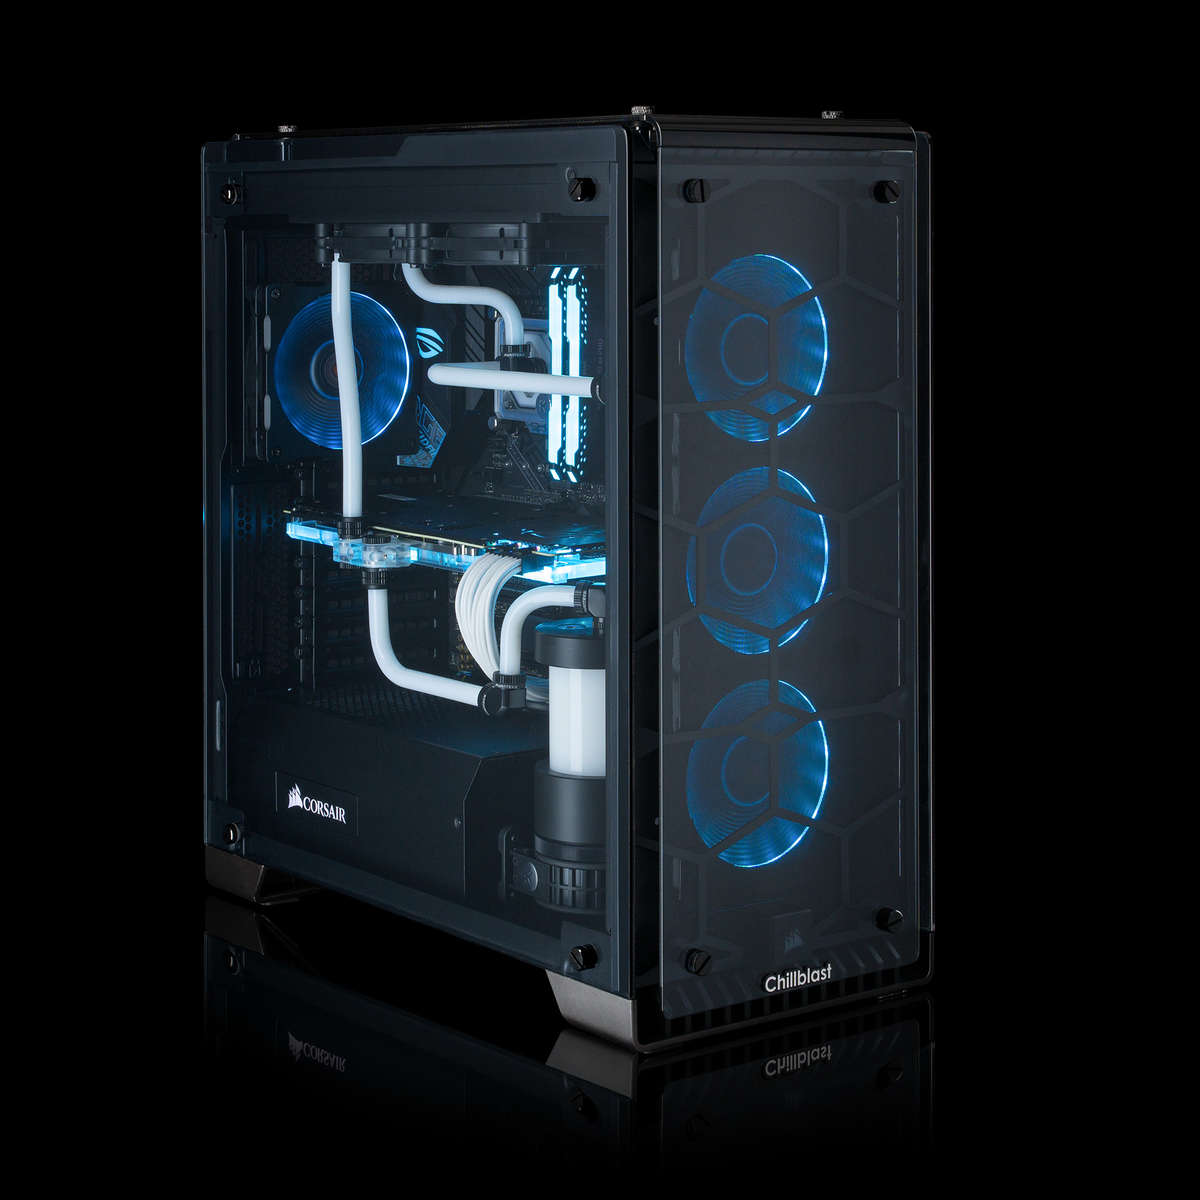 Chillblast Fusion Hailstorm X RGB Gaming PC